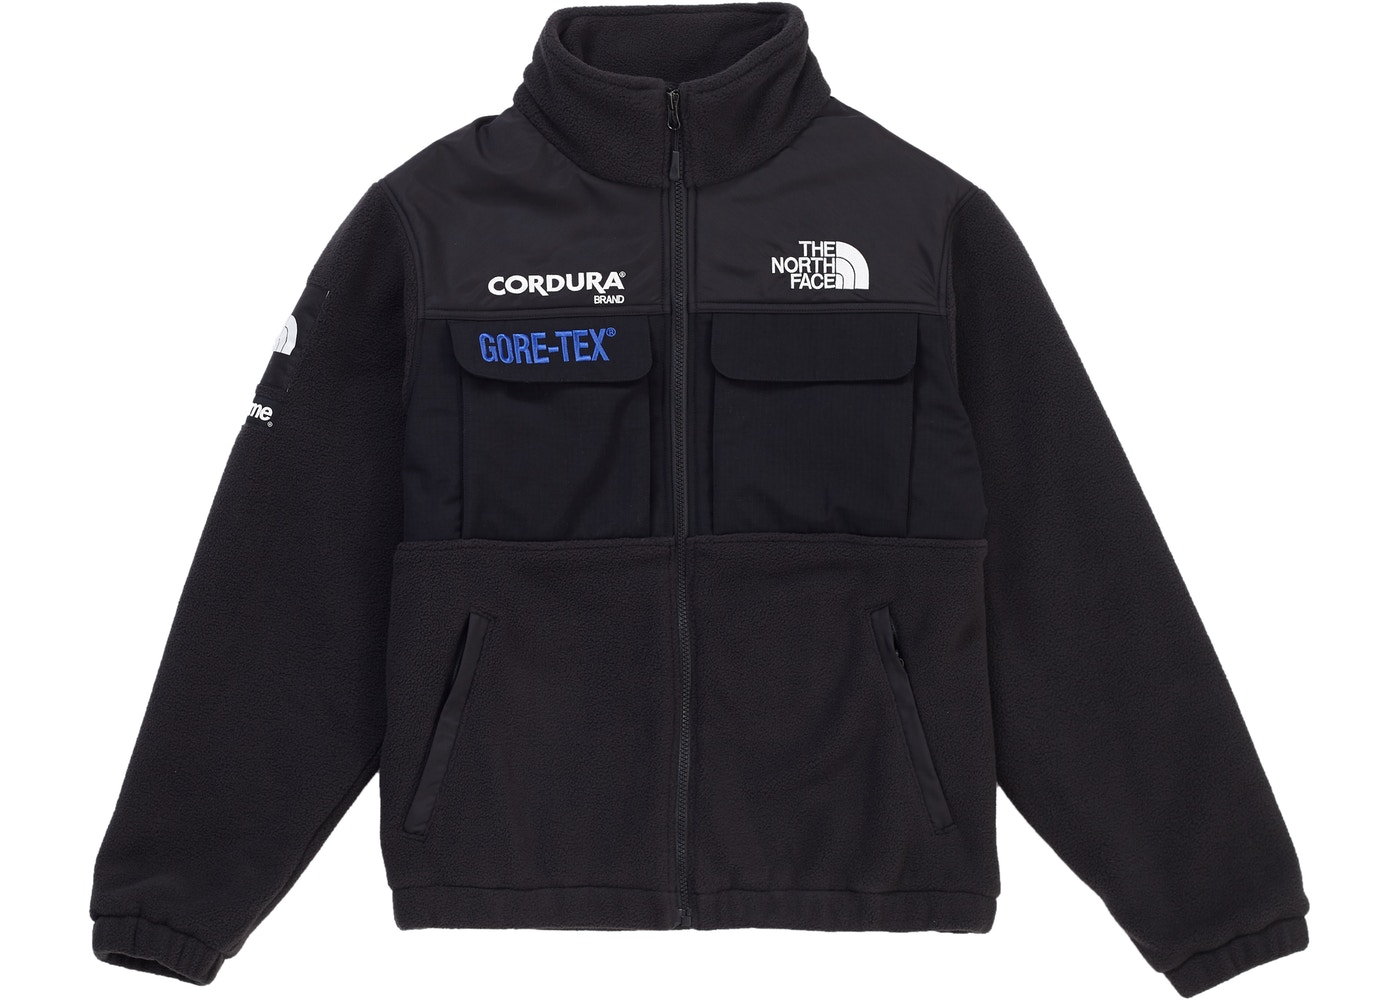 5c587657b Supreme The North Face Expedition Fleece (FW18) Jacket Black